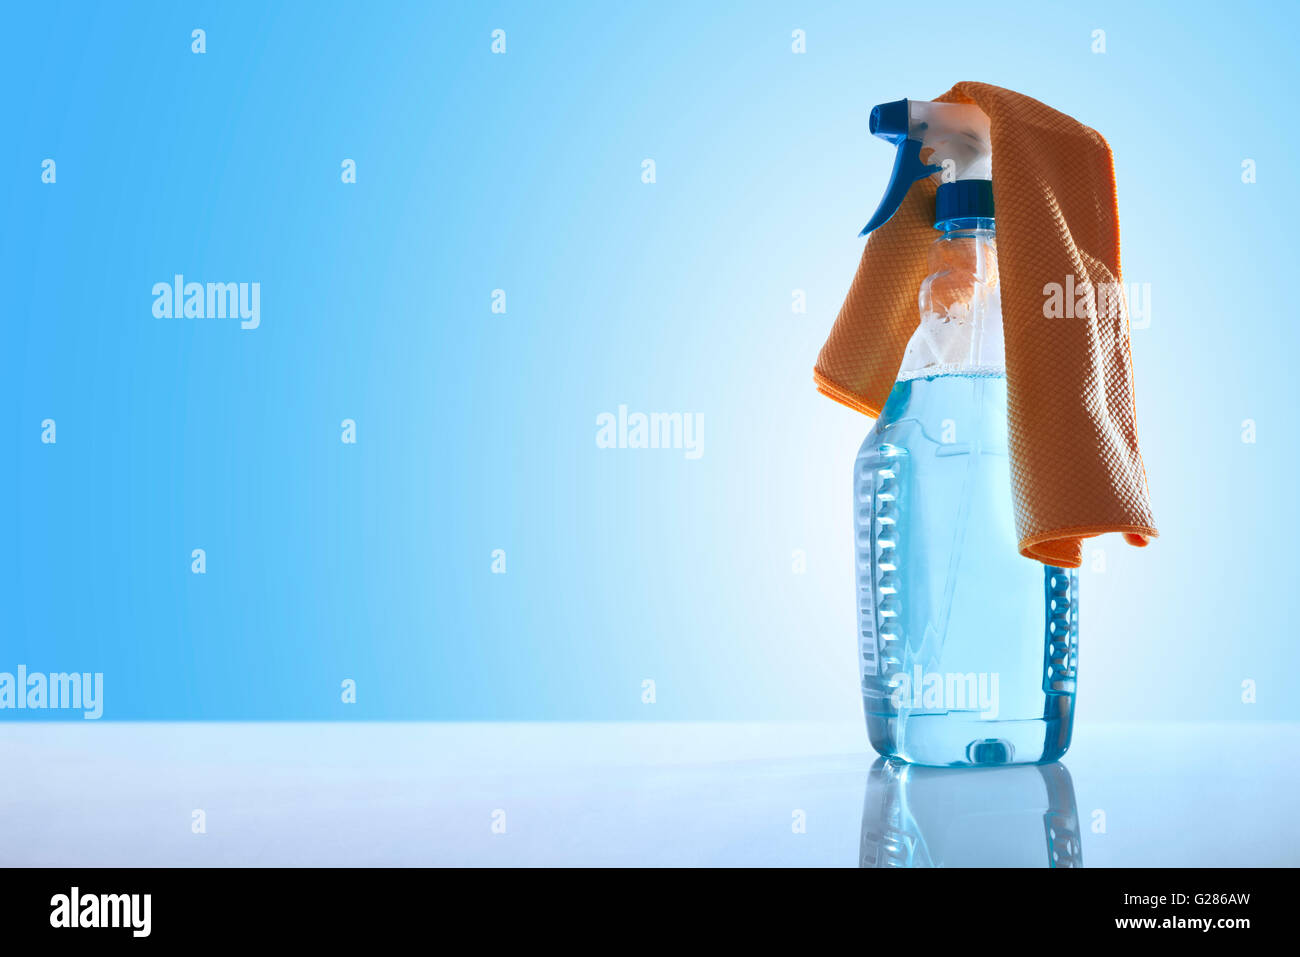 Bottle with glass cleaner and a yellow rag on a white table glass with blue background overview. Front view. Horizontal - Stock Image